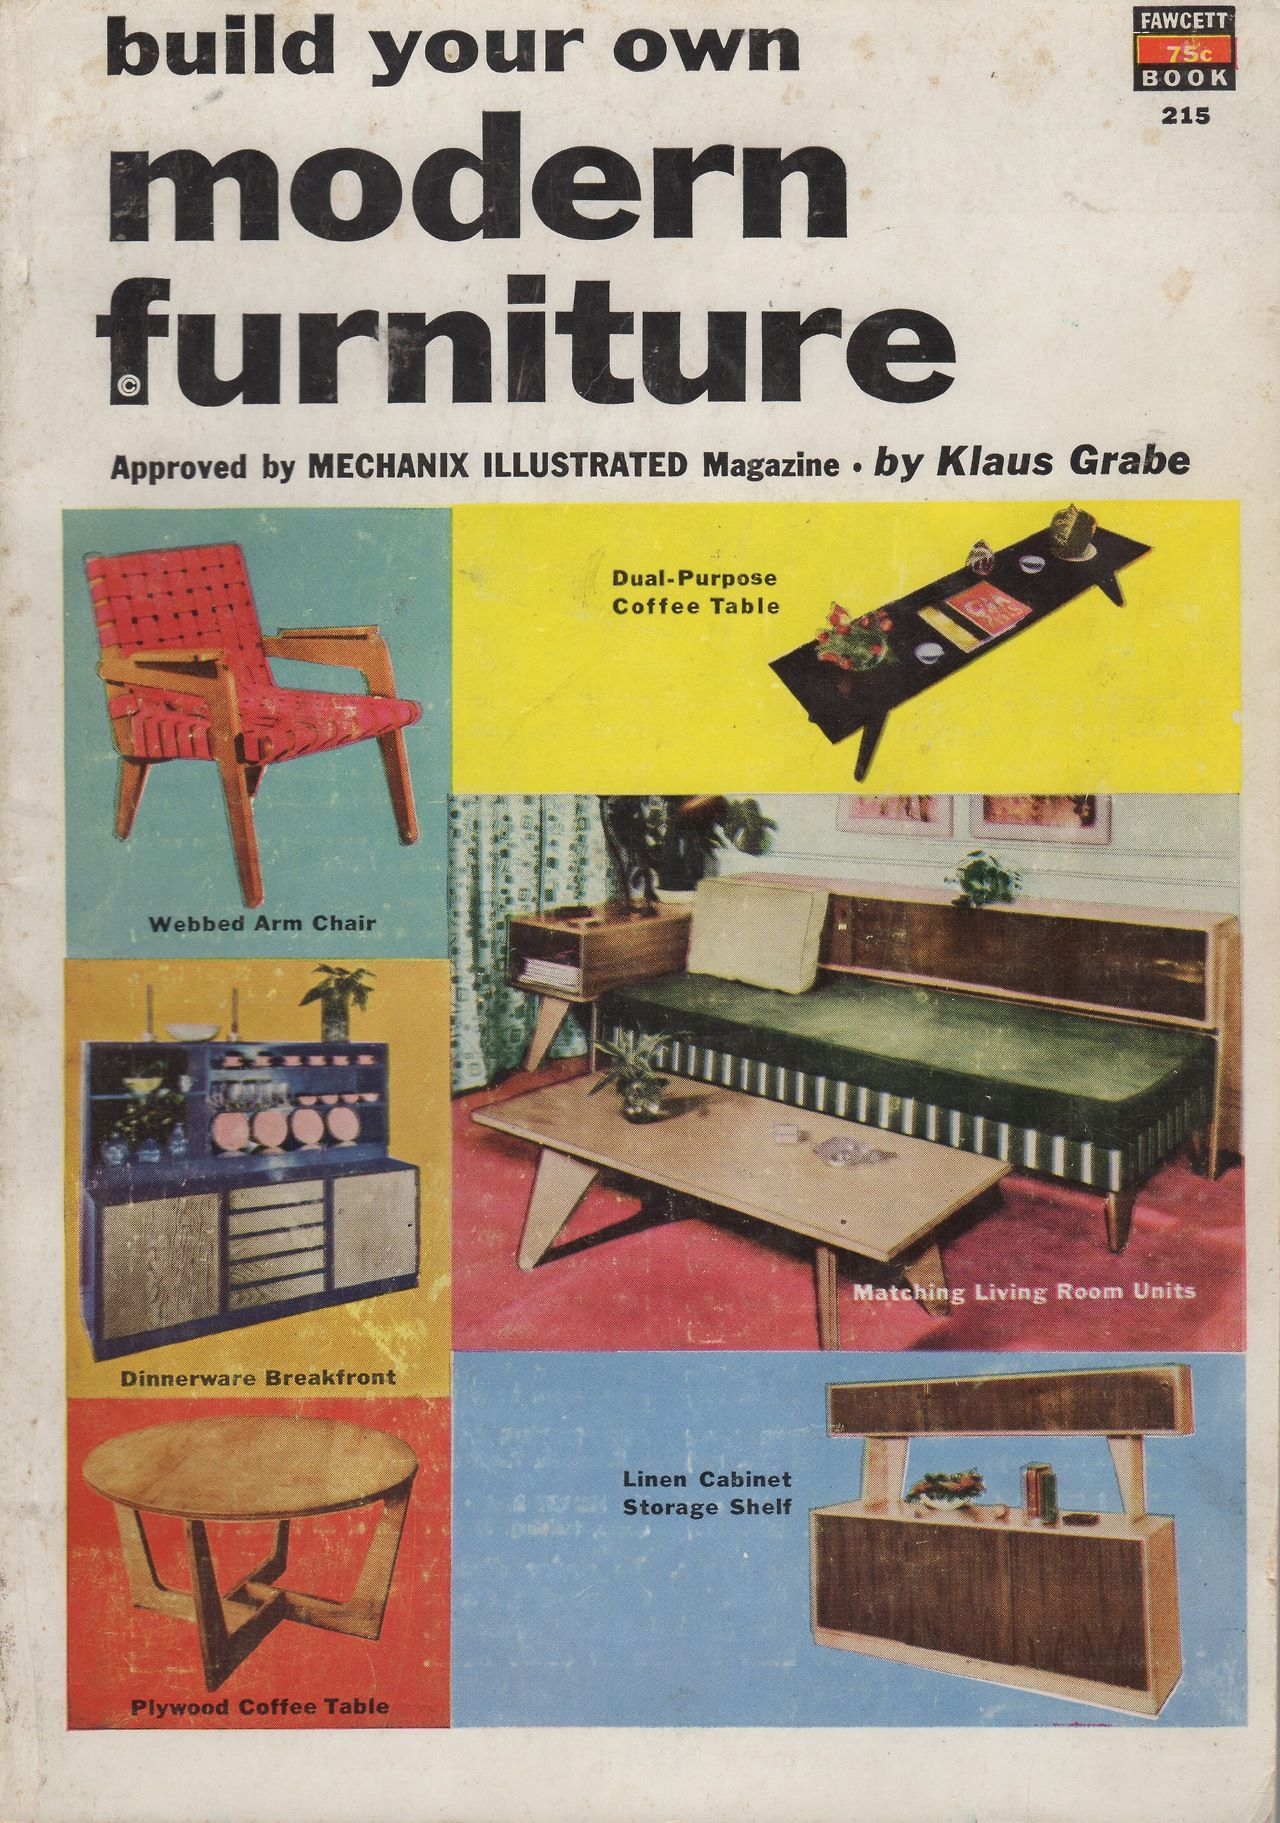 Build Your Own Modern Furniture By Klaus Grabe. 1954. Hippli Books: Photo